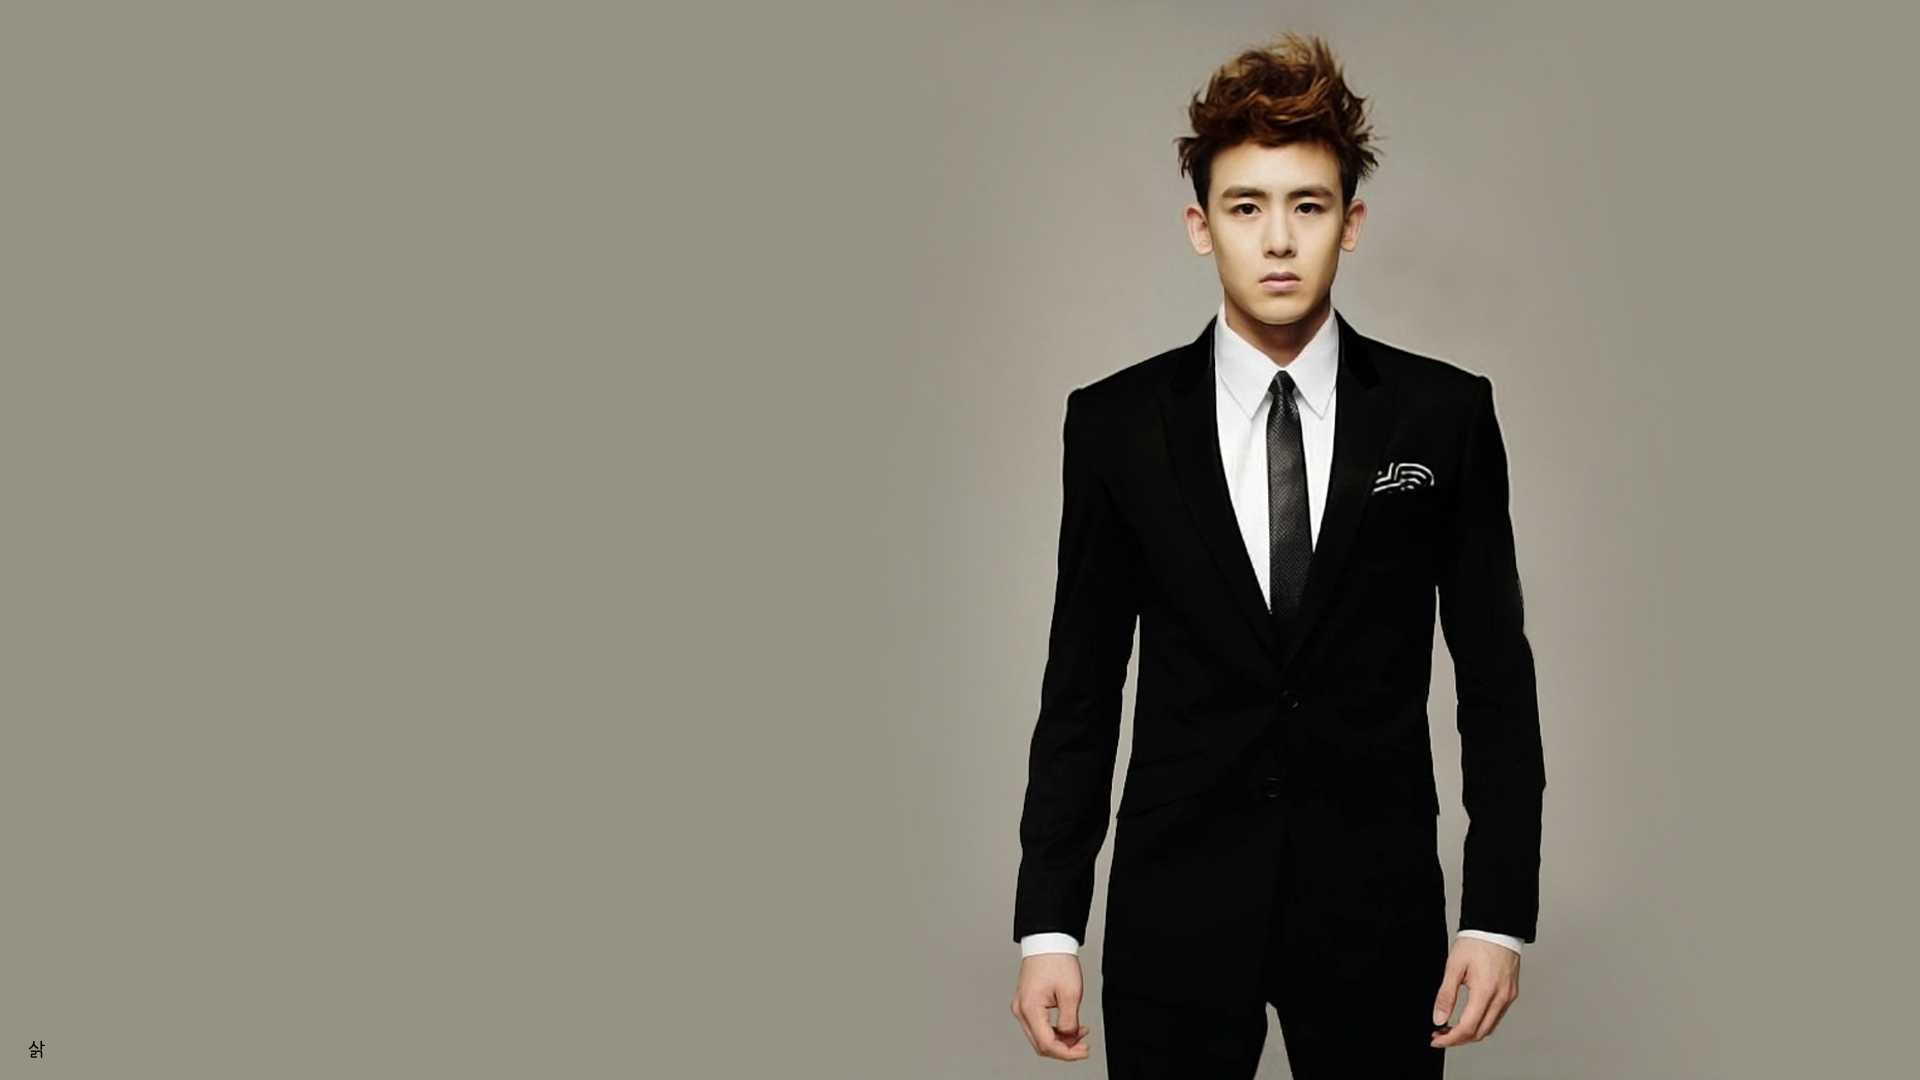 2PM's Nichkhun Was Harsh On Himself After His Drunk Driving Accident